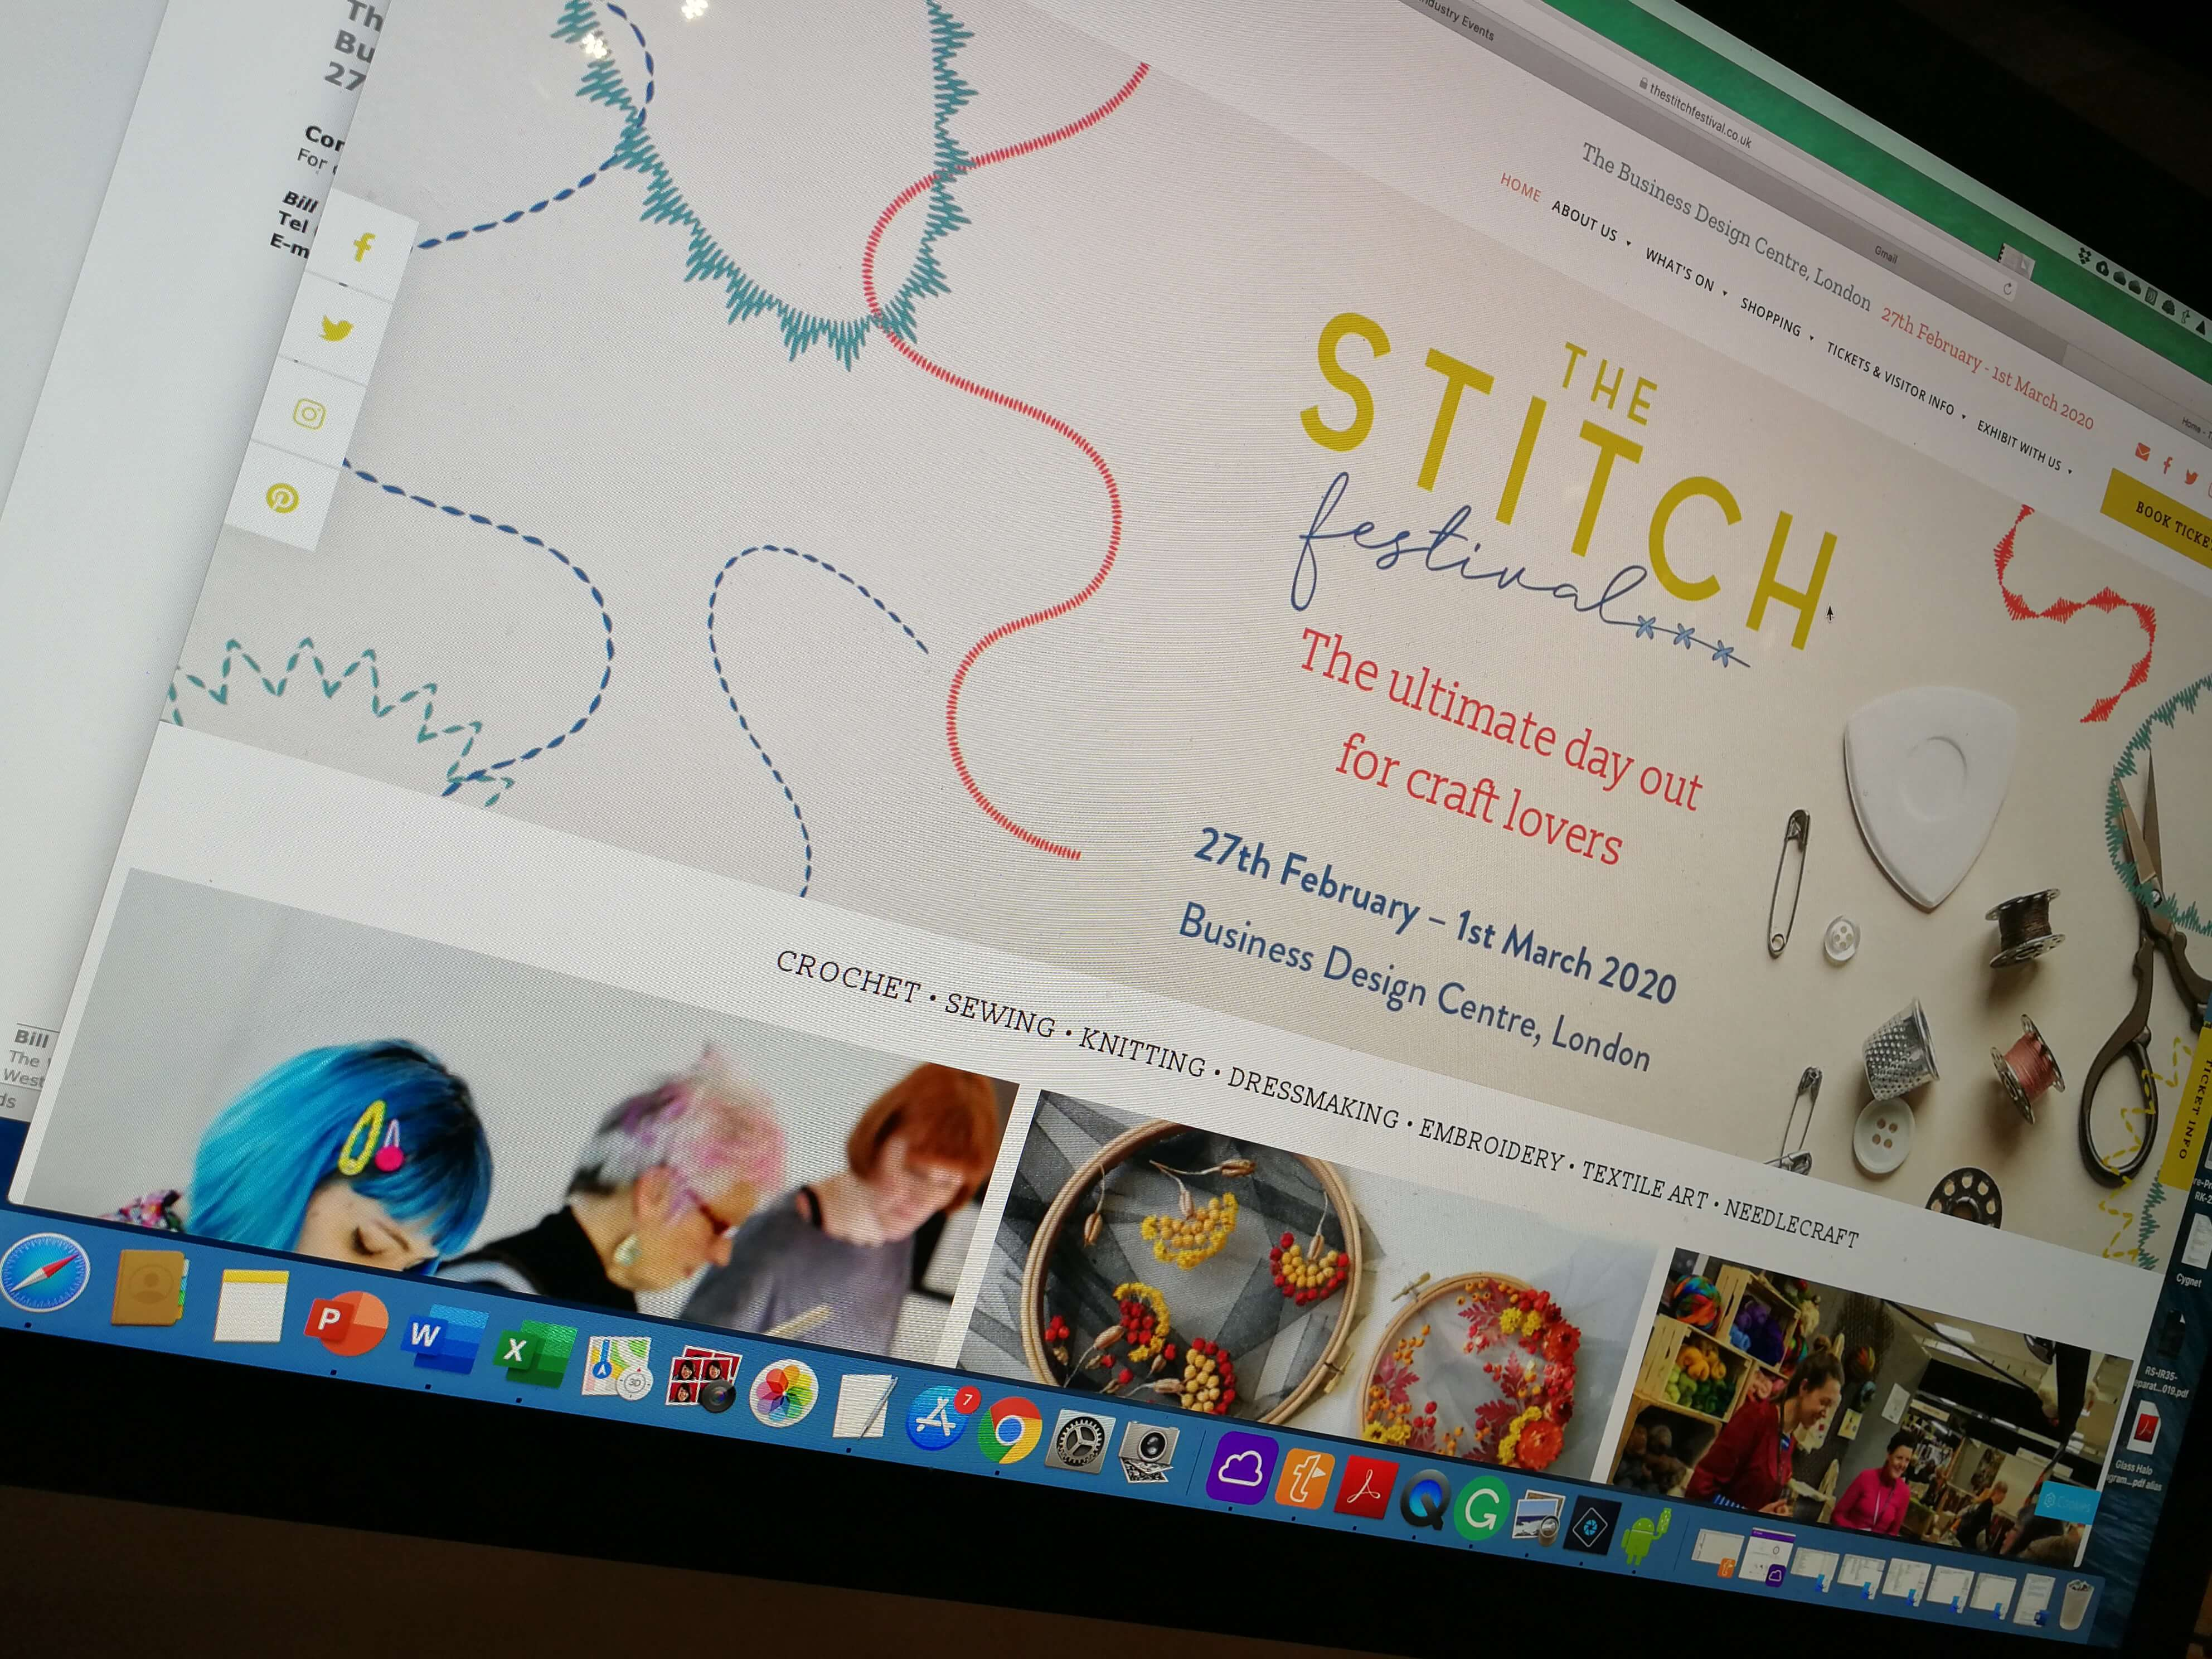 Stitch Festival Screen Shot of Website